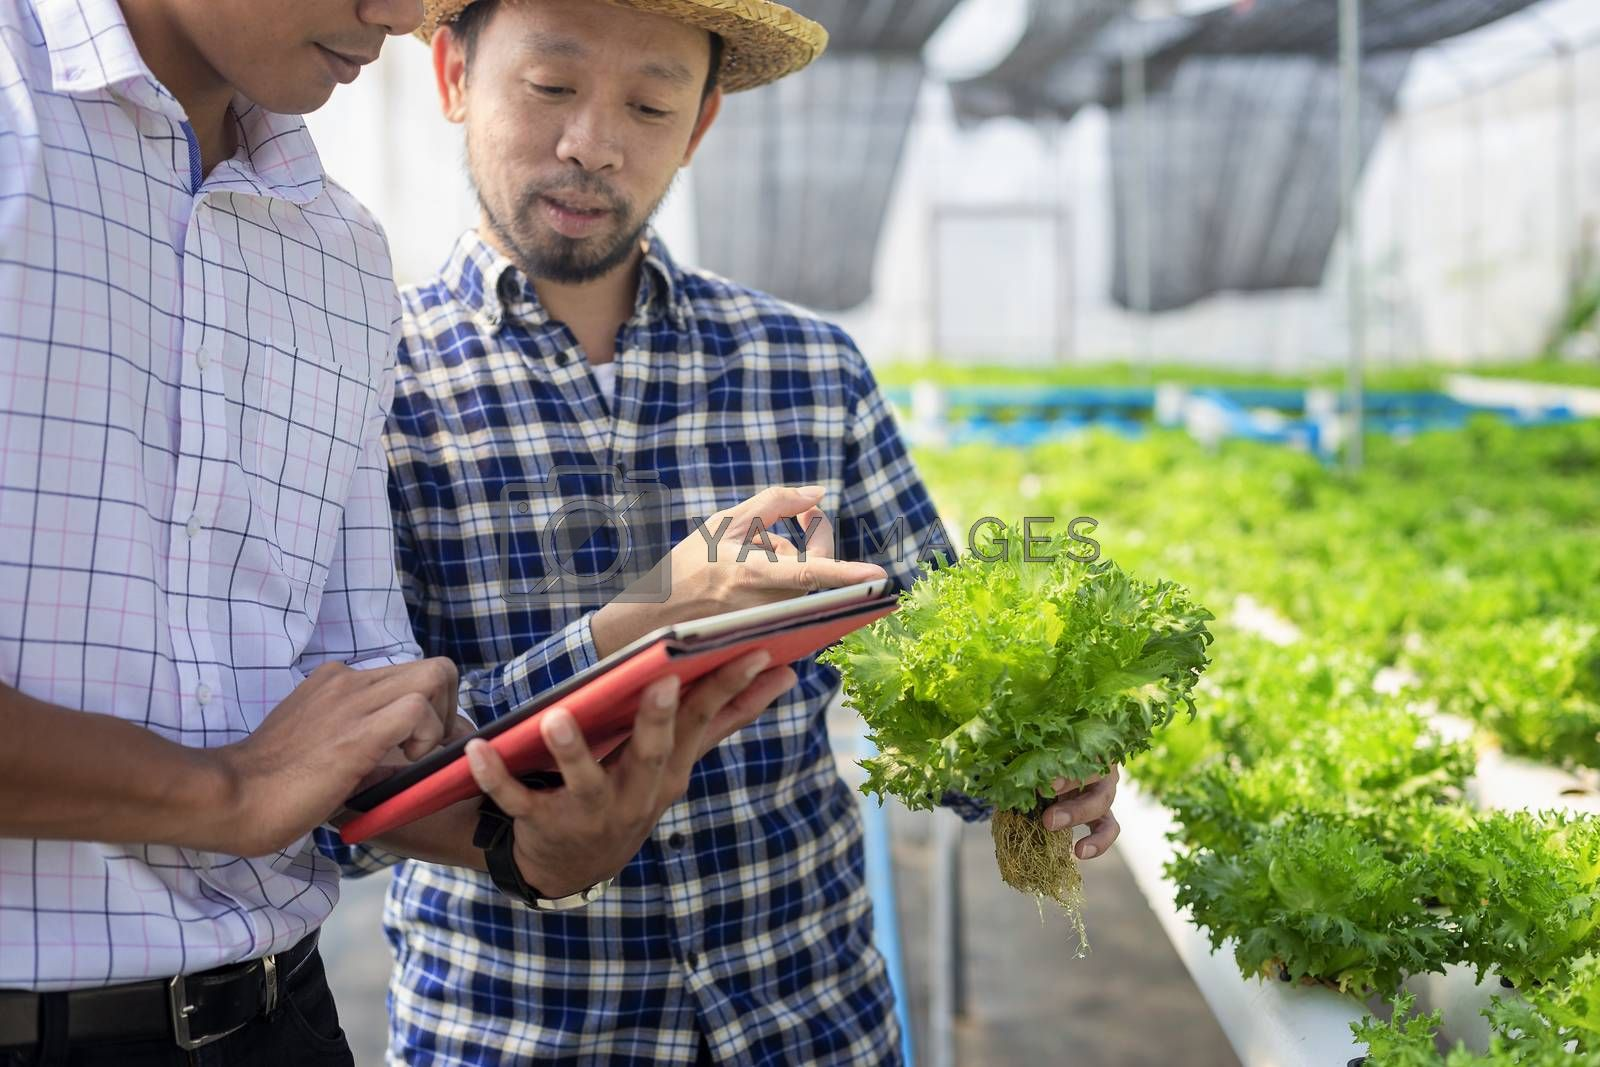 Vegetable farm owners and vegetable quality inspectors are always checking the quality of vegetables on the farm to be non-toxic and fresh.